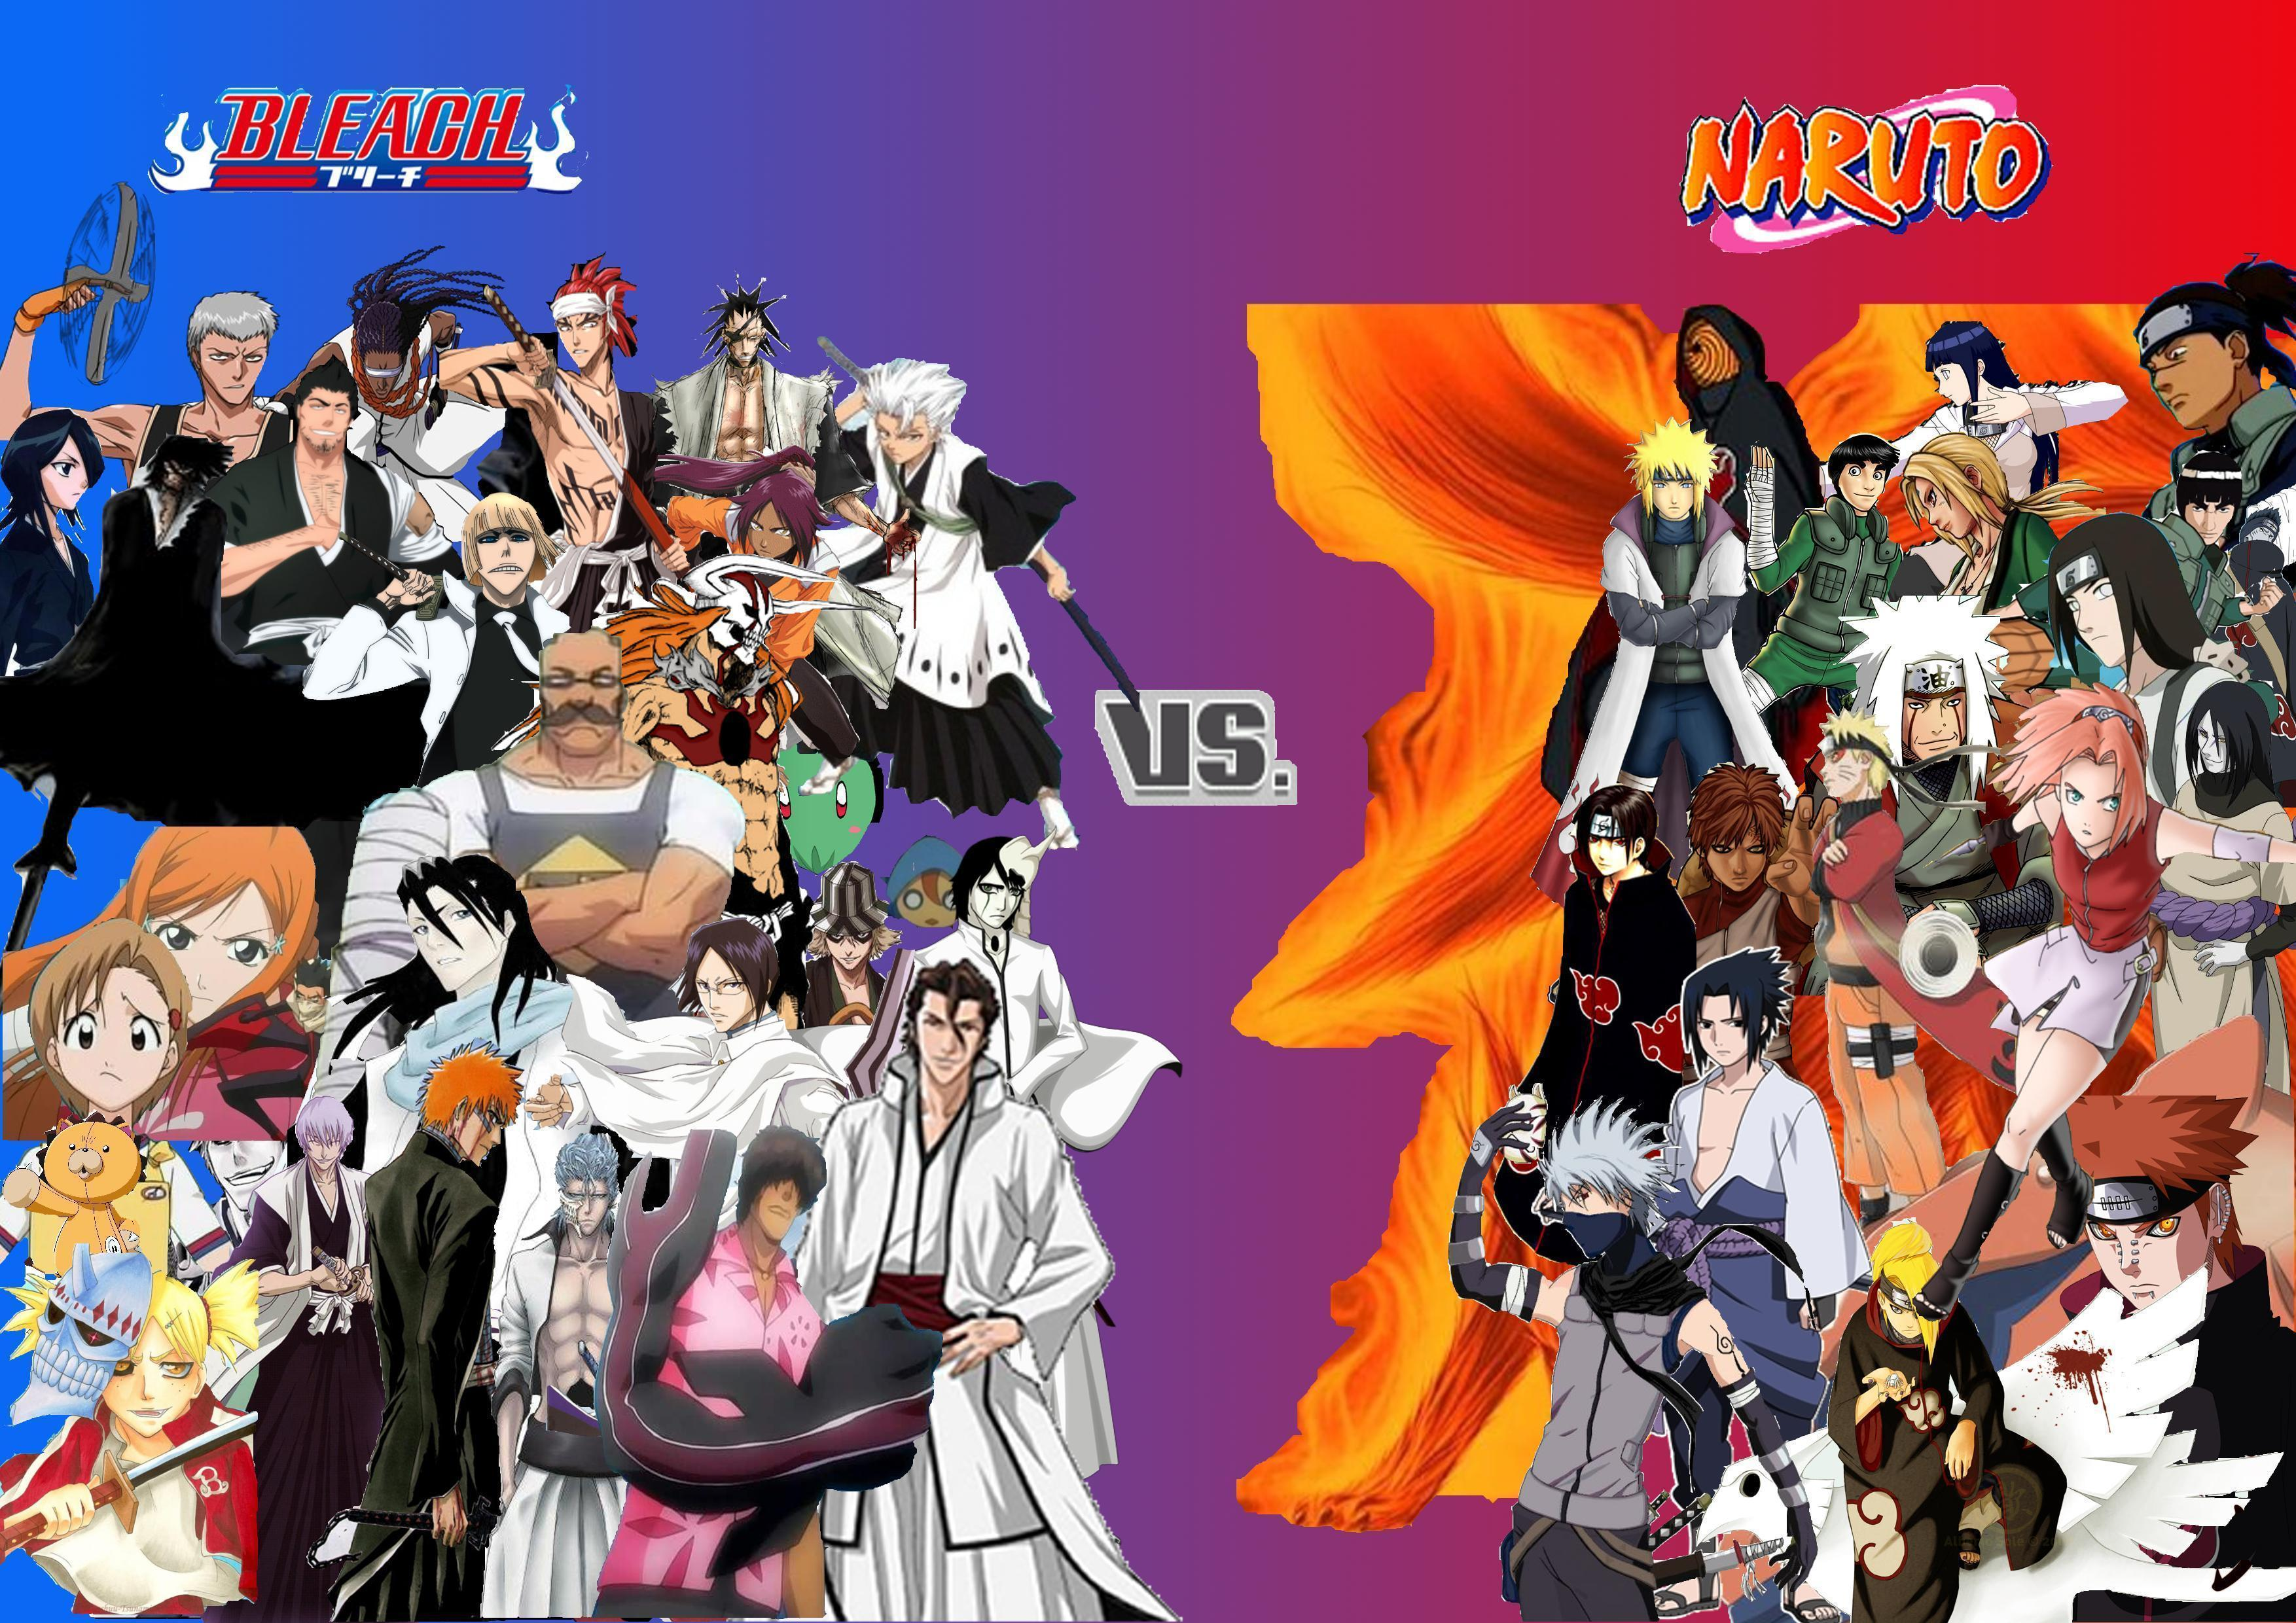 Bleach vs Naruto version 2.6 – Unblocked Games free to play